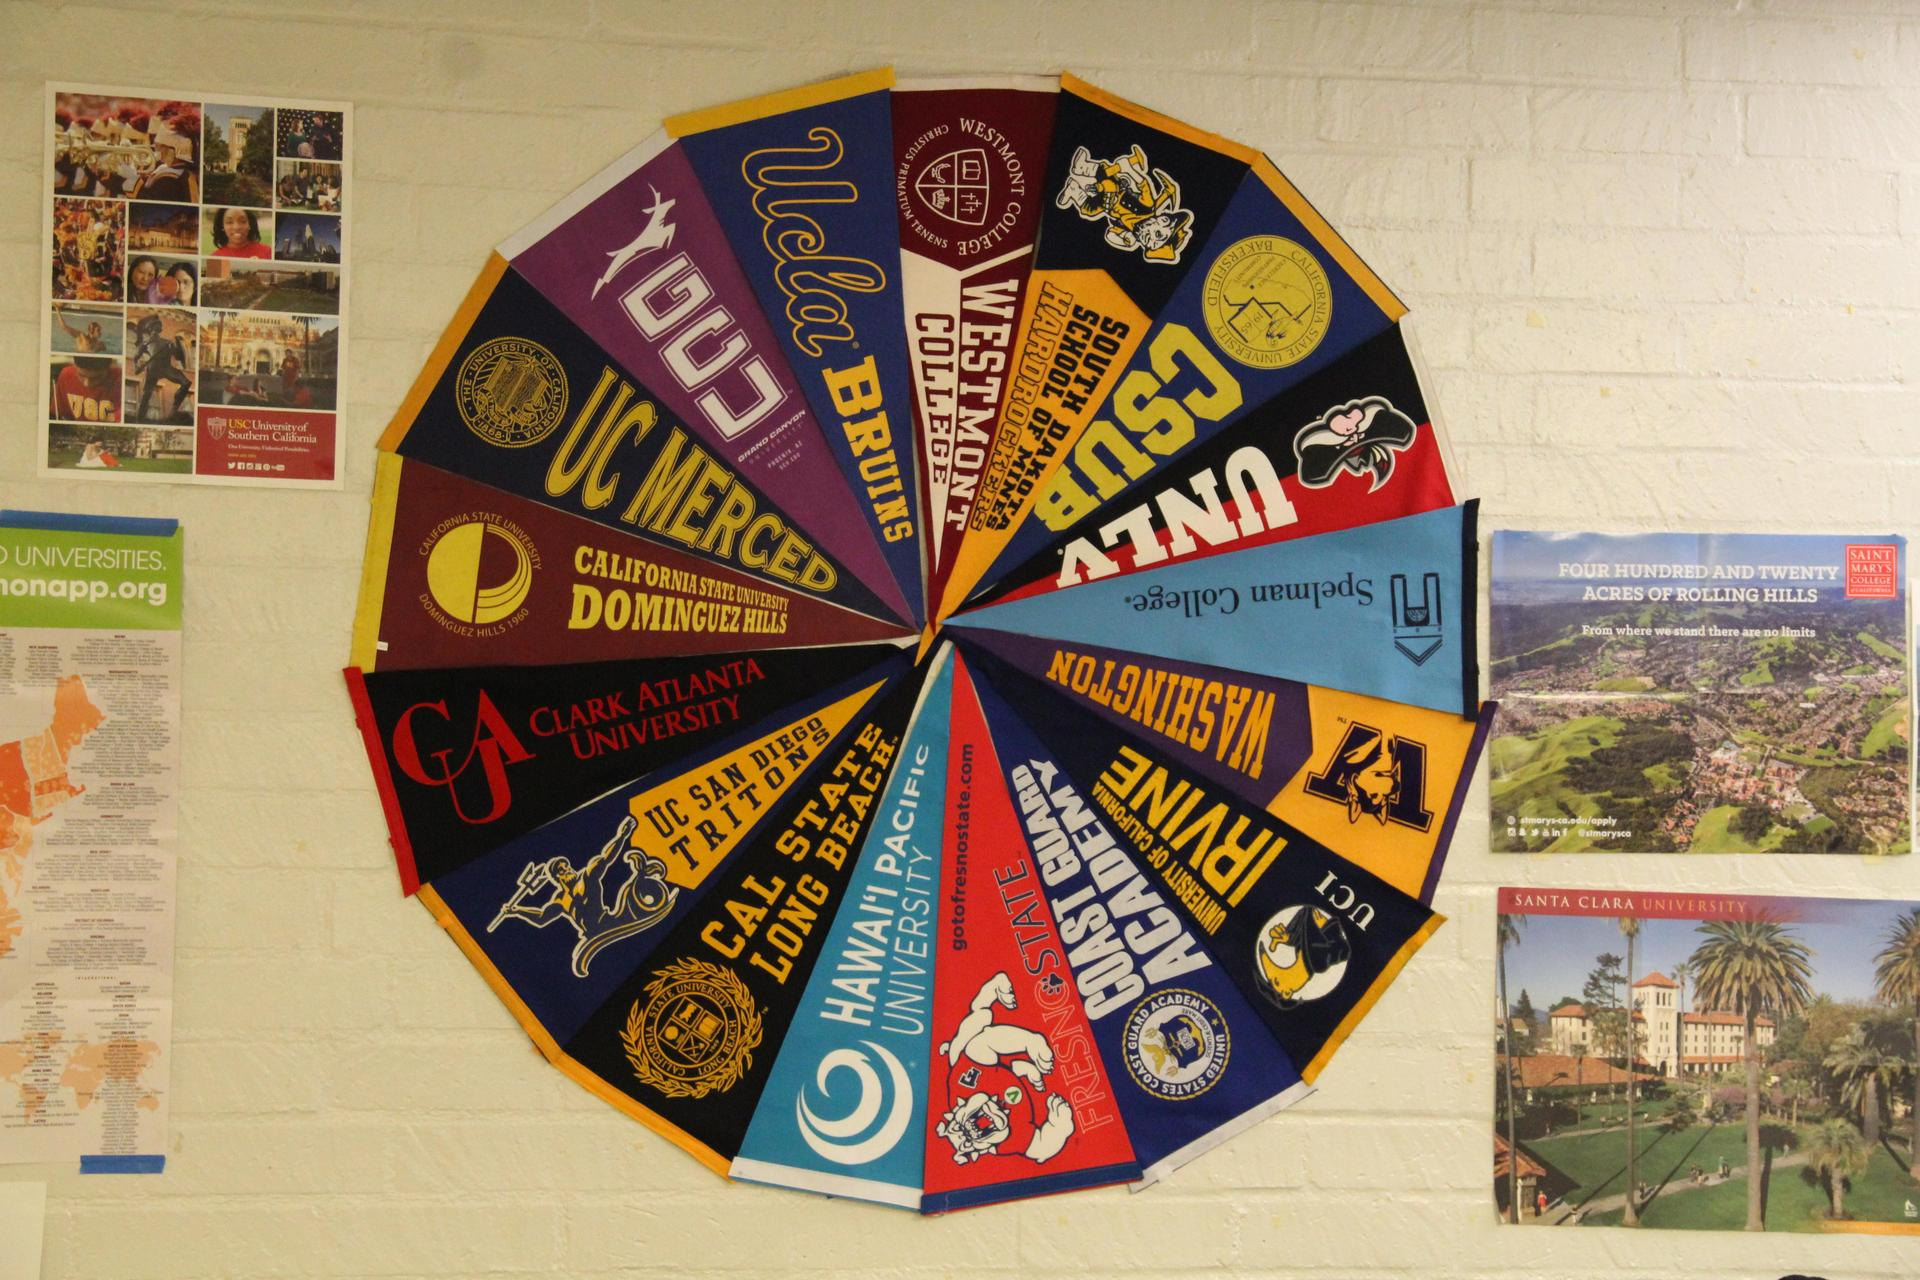 pinwheel image of college pennants.